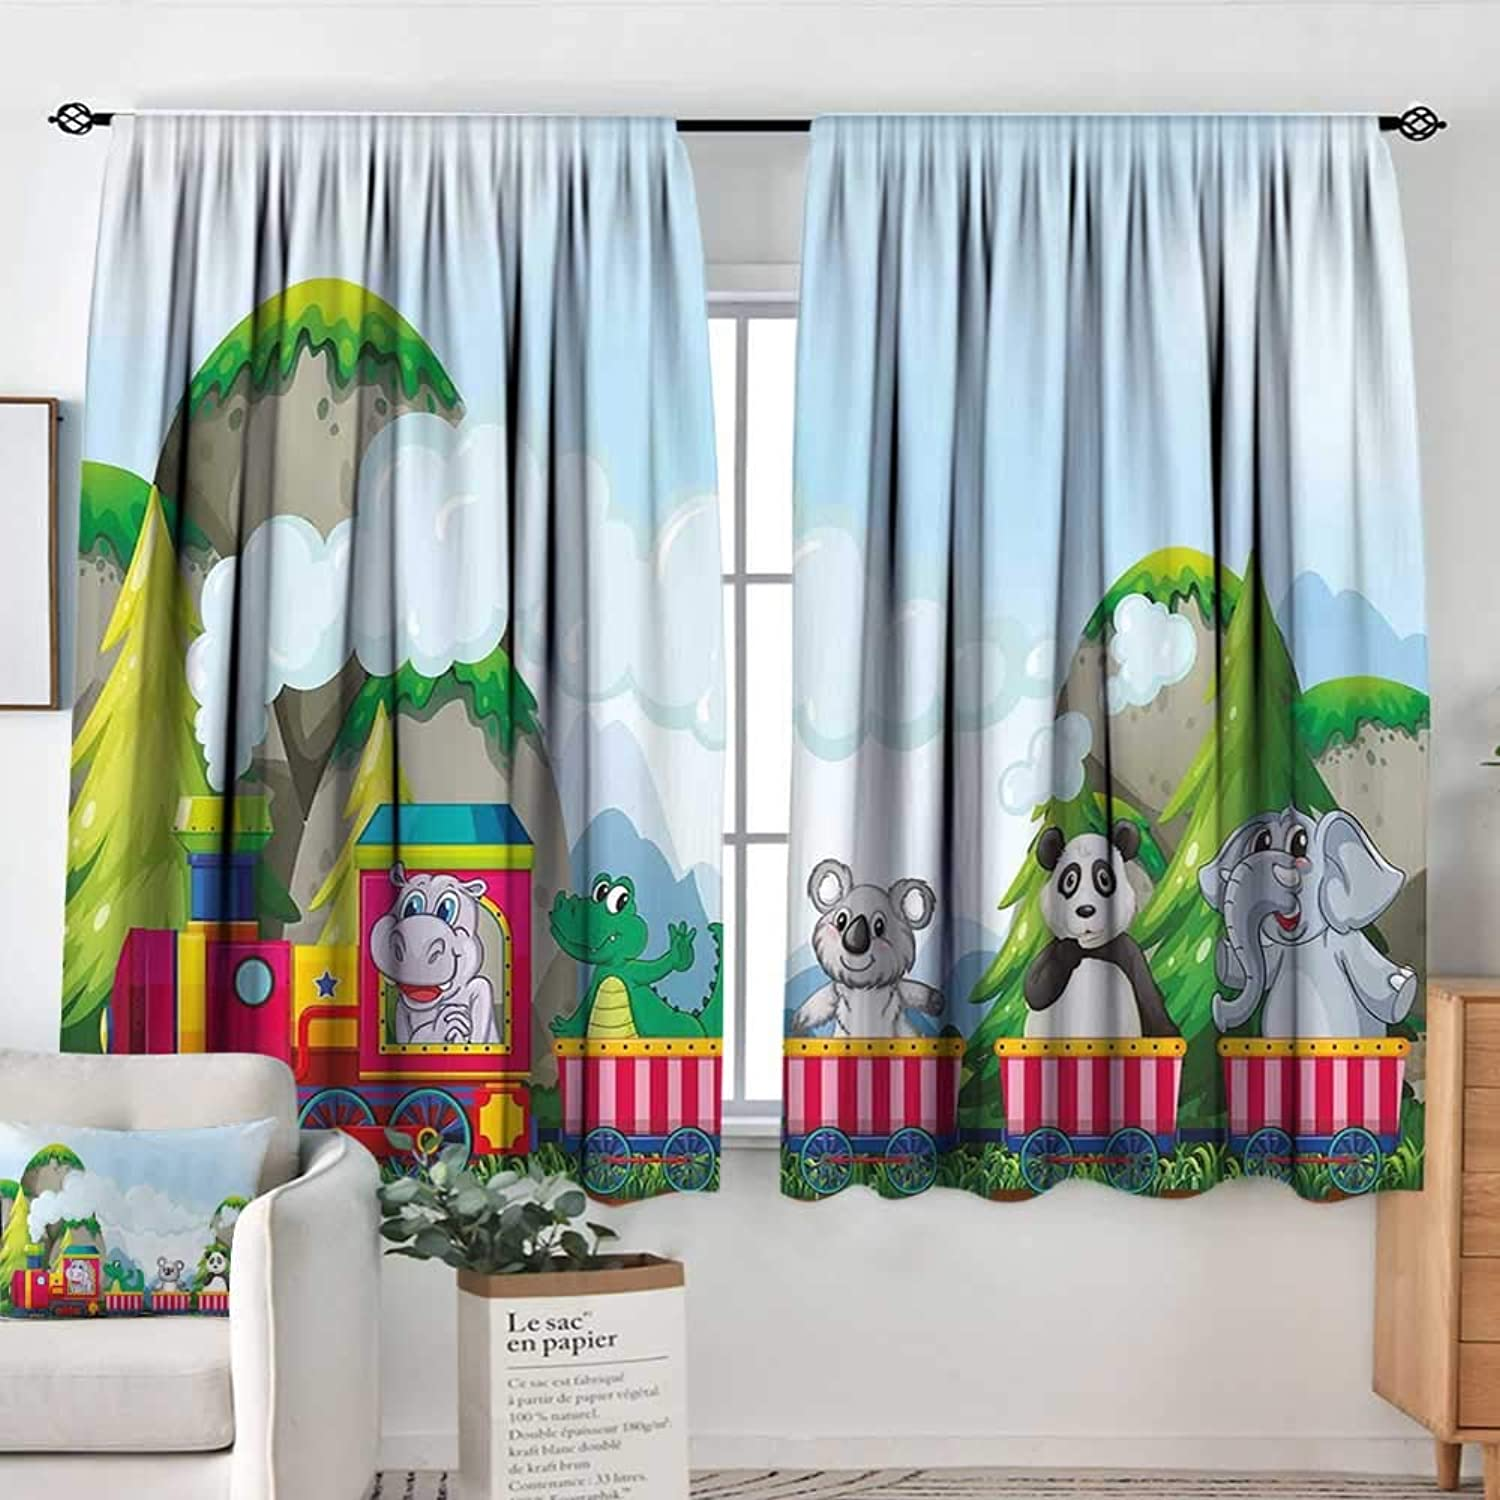 Elliot Dgoldthy Home Decoration Thermal Insulated Curtains Kids,Various Animals Riding on Train in The Park with Mountains Cartoon Style Illustration,Multicolor,for Bedroom,Nursery,Living Room 42 x63